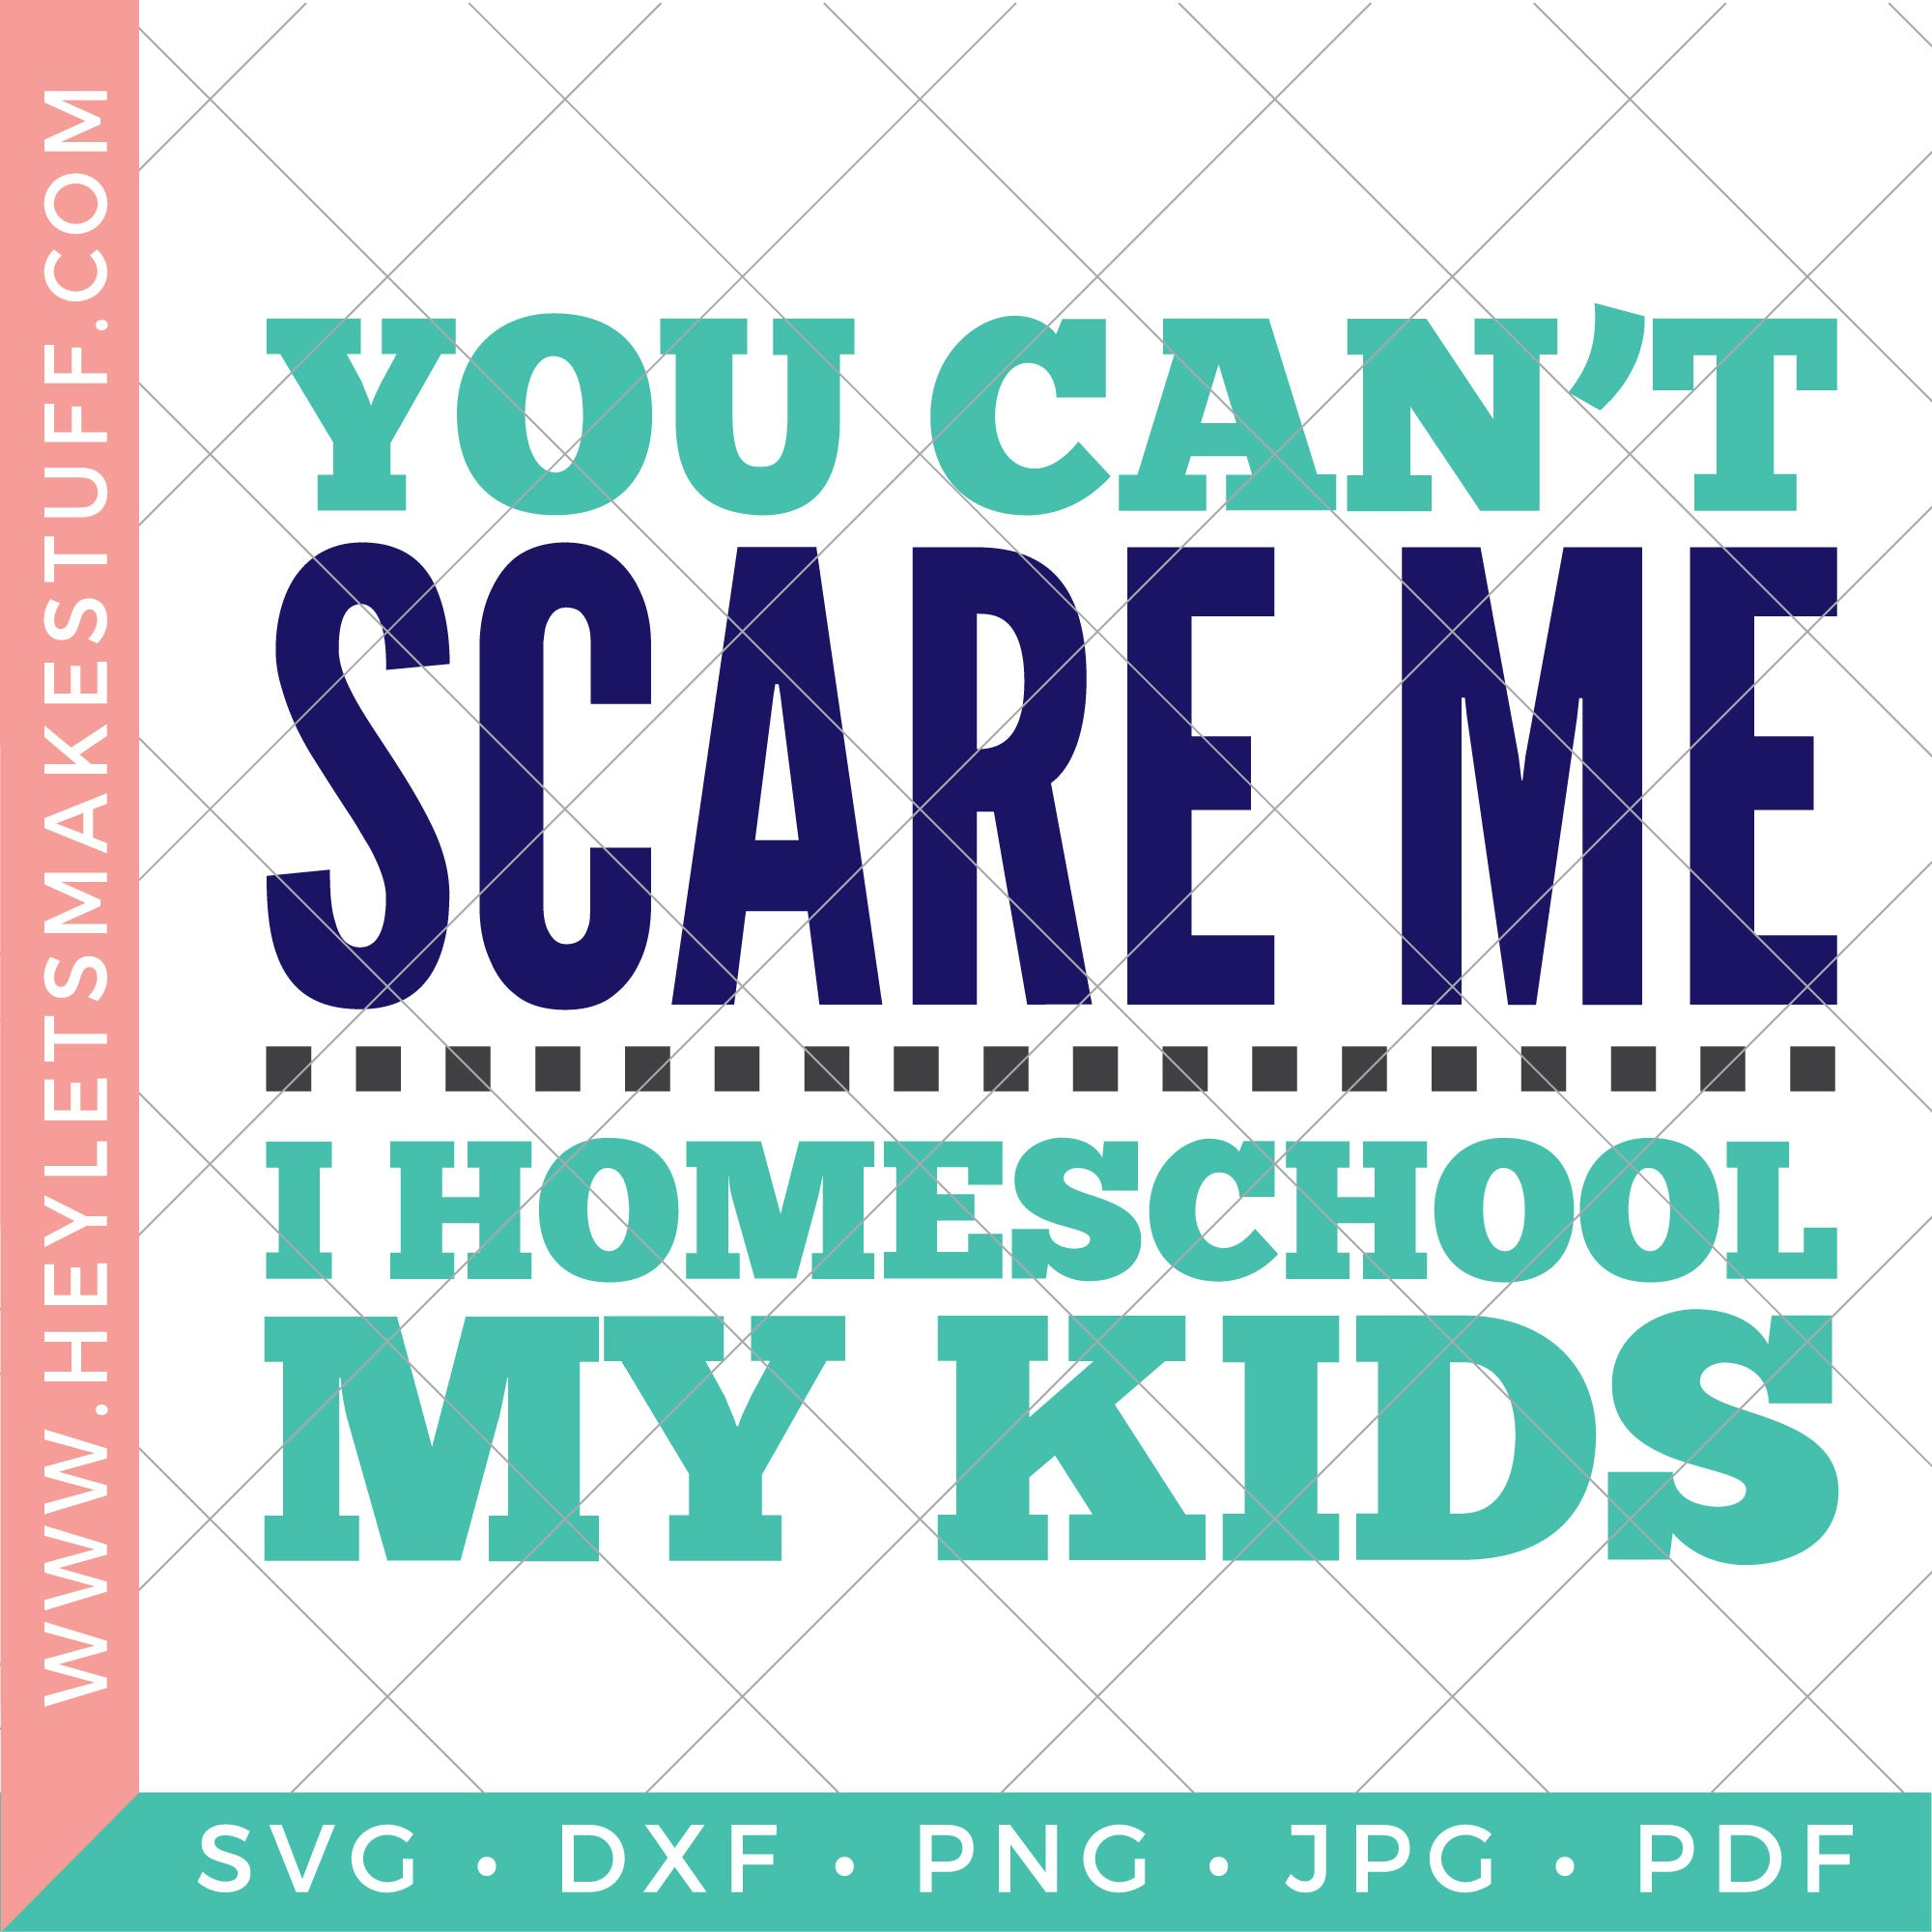 You Can't Scare Me, I Homeschool My Kids